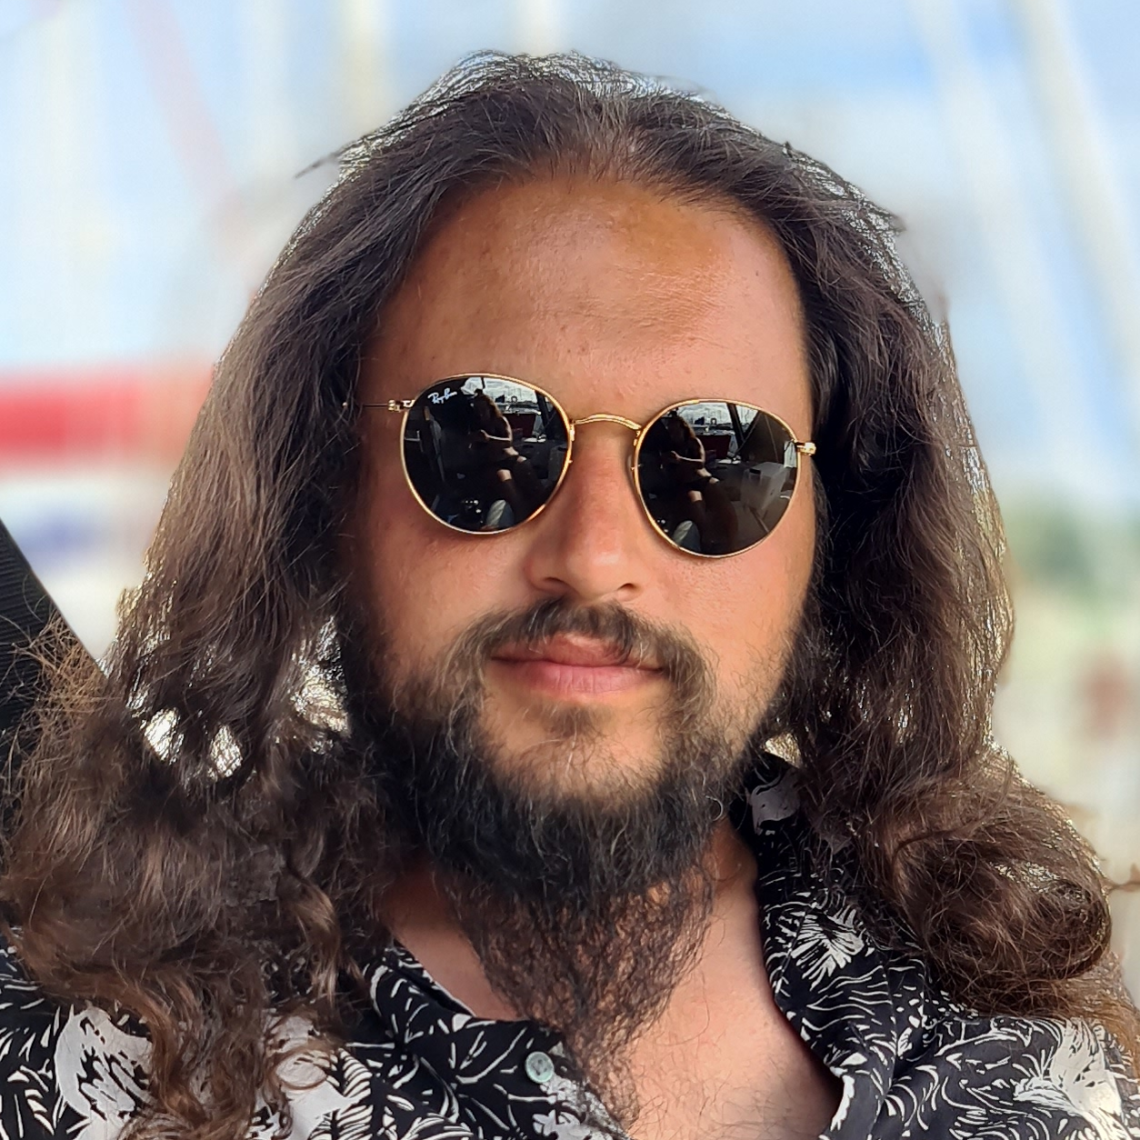 Ivan Tomić - machine learning specialist